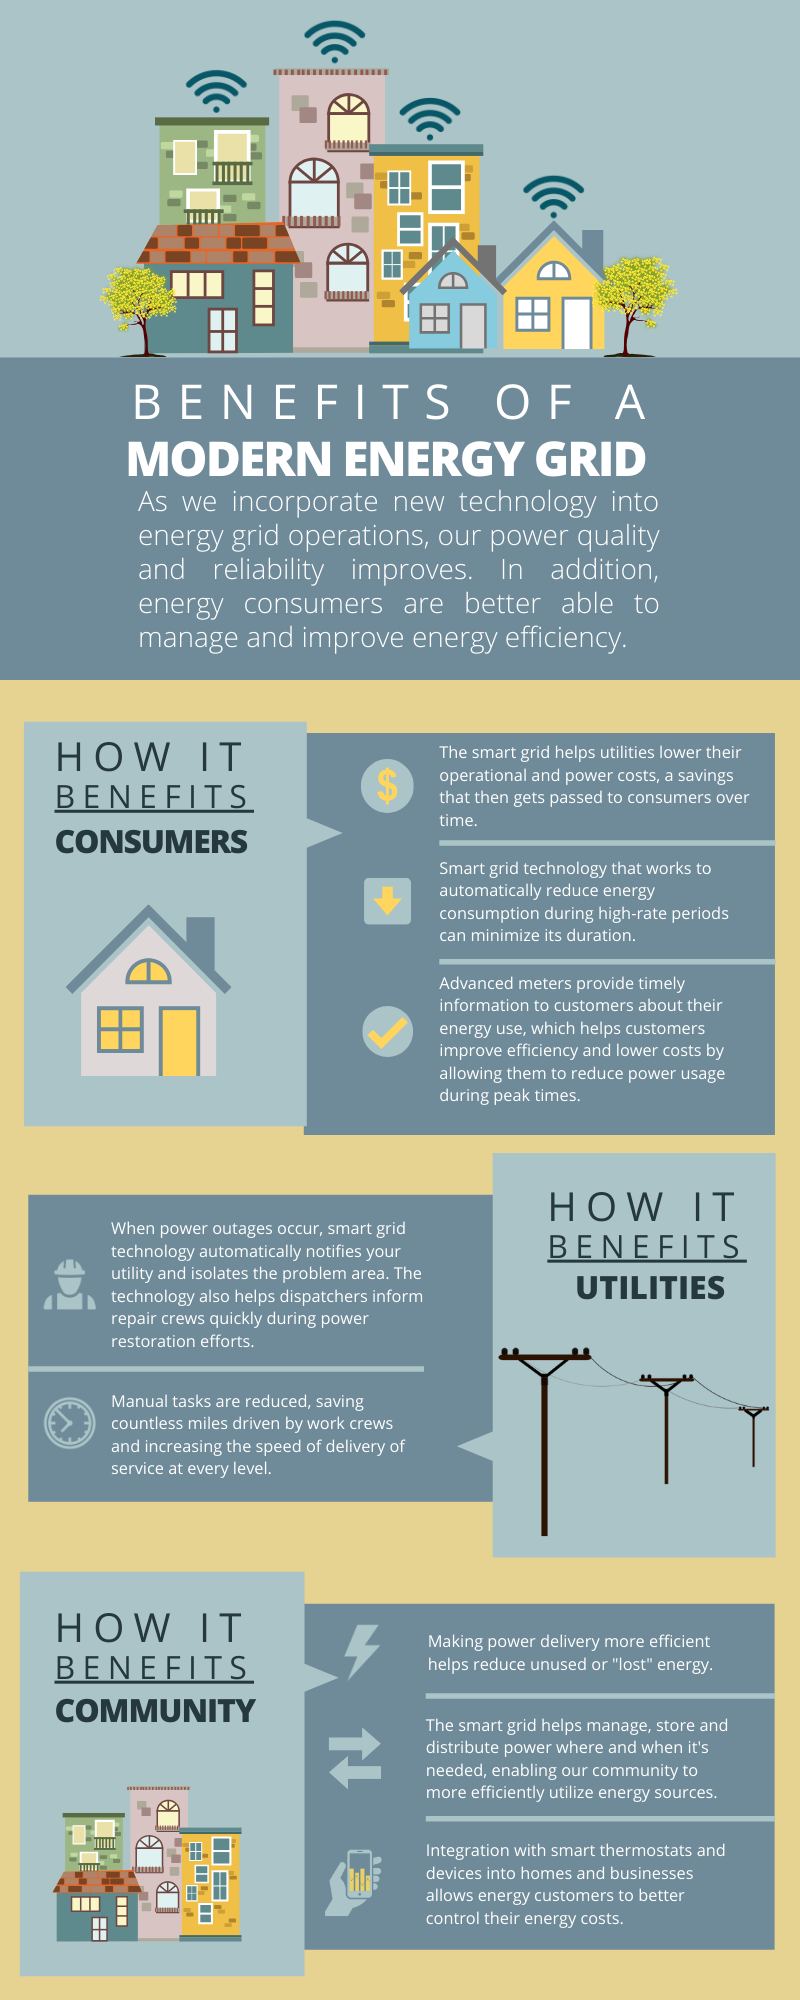 BENEFITS OF A MODERN ENERGY GRID